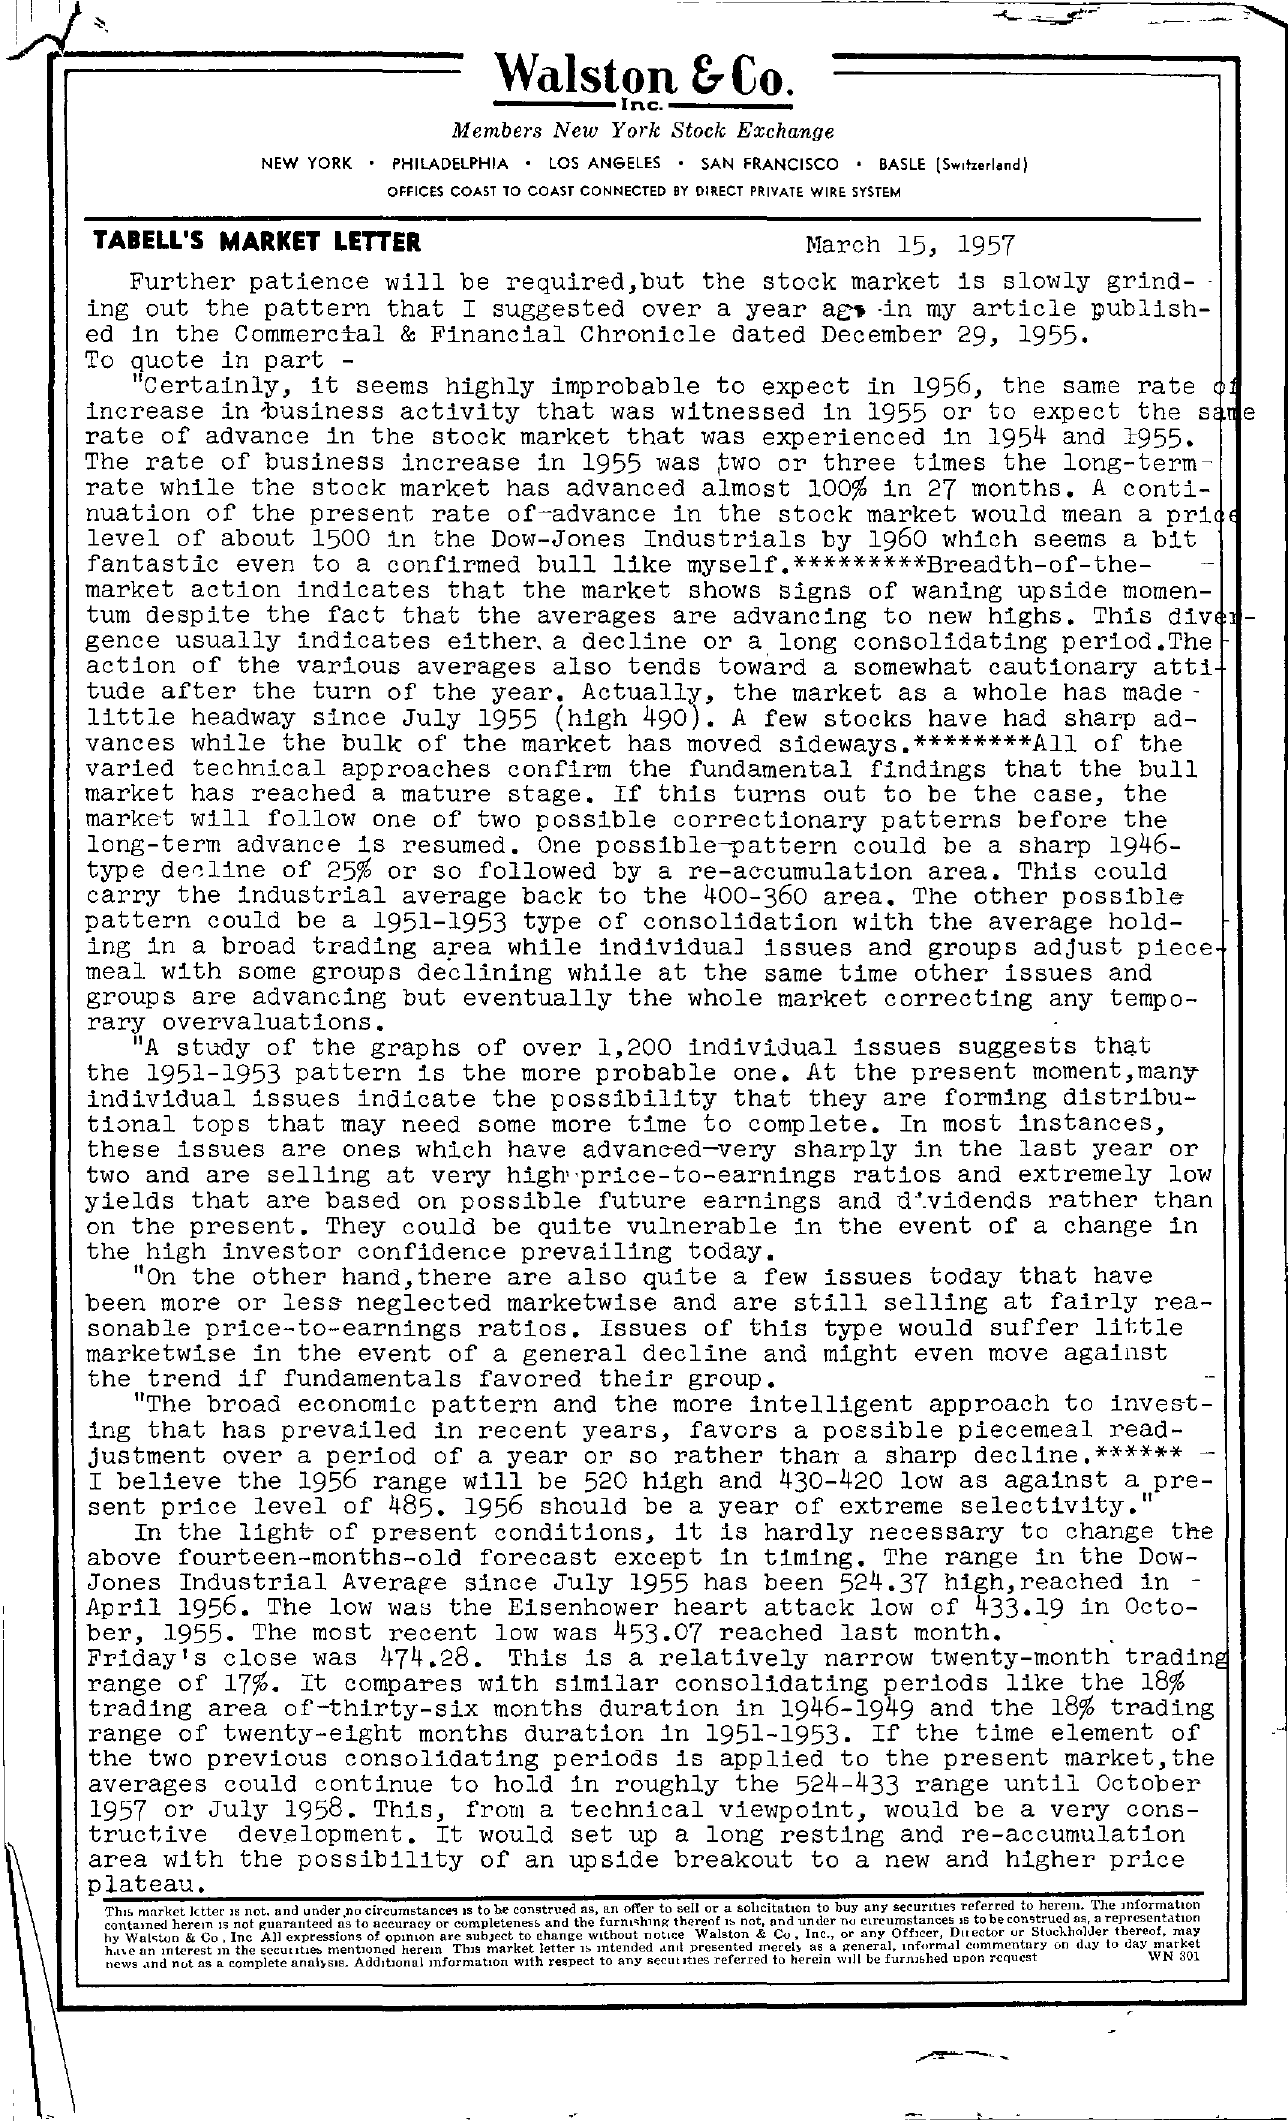 Tabell's Market Letter - March 15, 1957 page 1